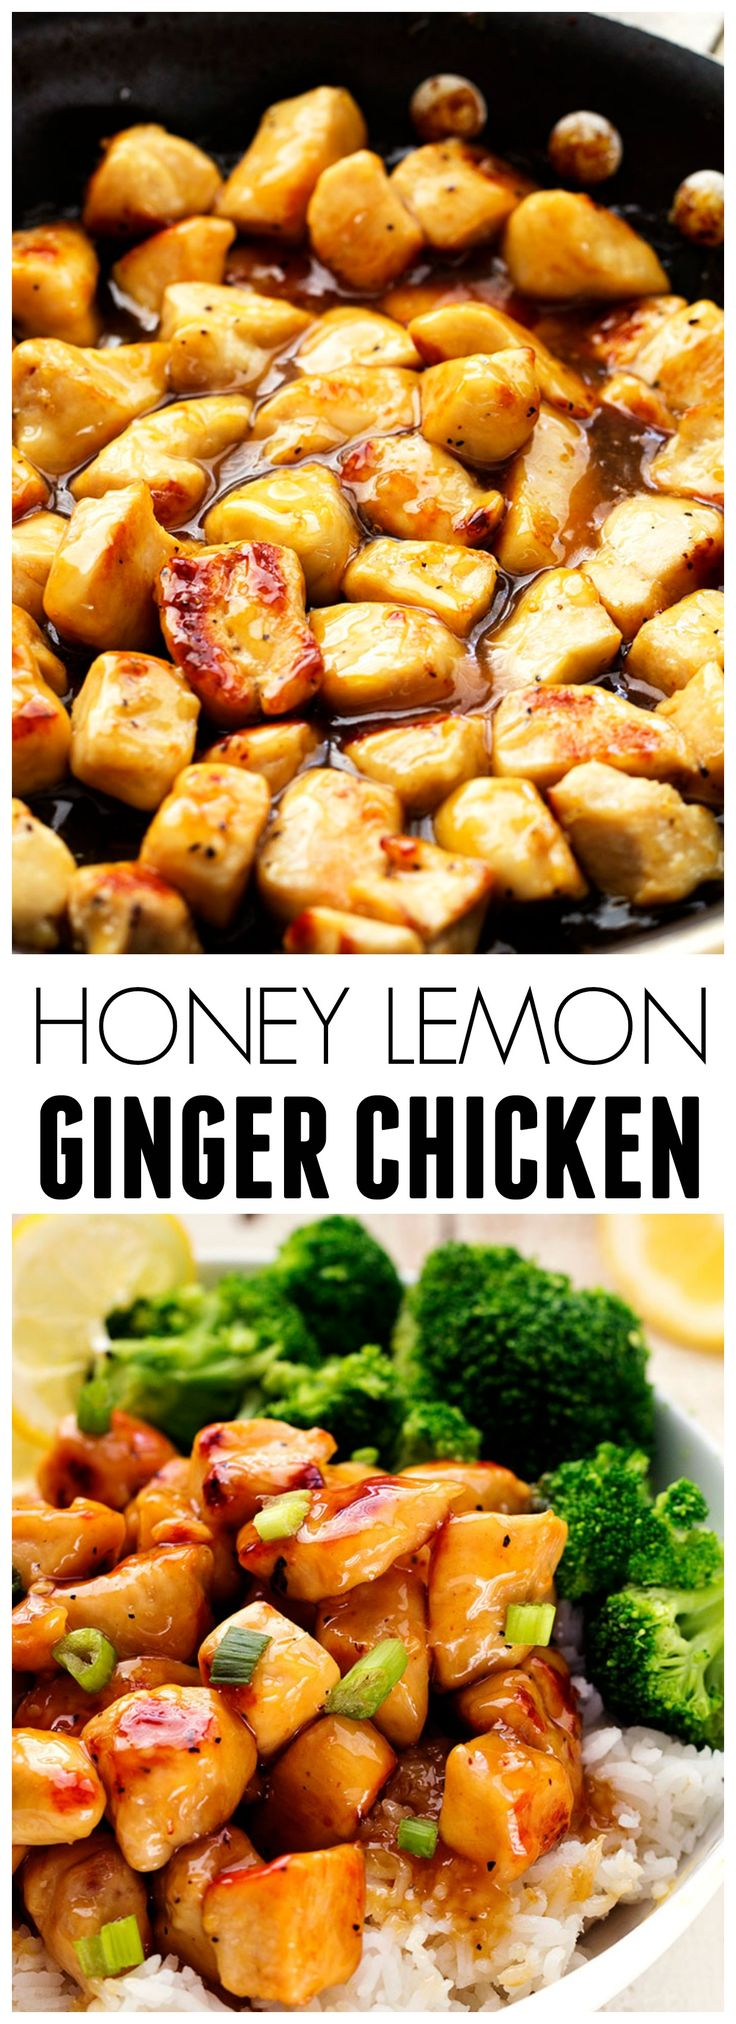 This Honey Lemon Ginger Chicken is light and ready in under 30 minutes! The flavor is out of this world good!